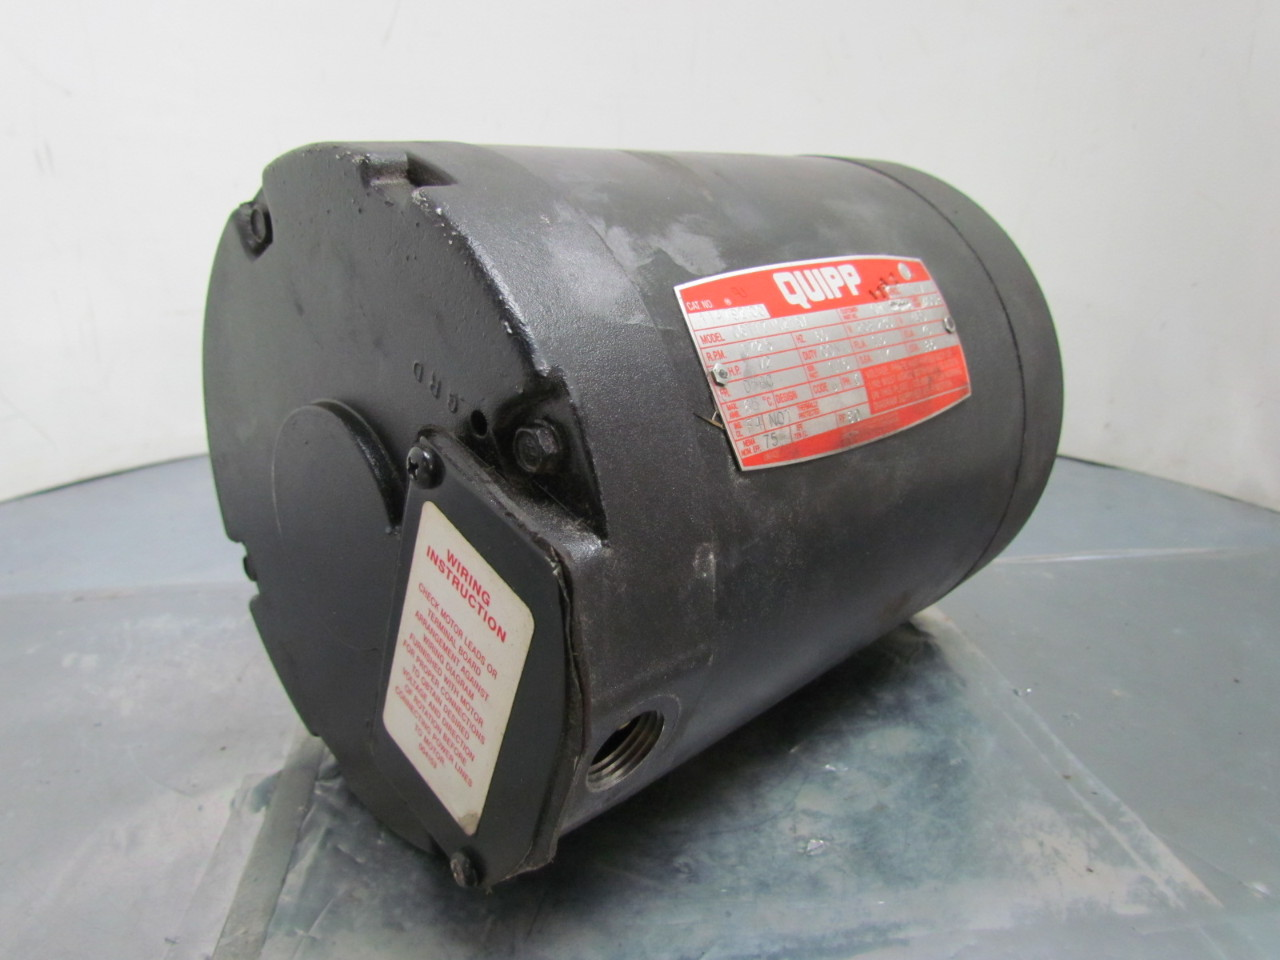 Leeson quipp electric motor 1 2 hp 3ph 1725rpm 56c frame for 1 1 2 hp electric motor